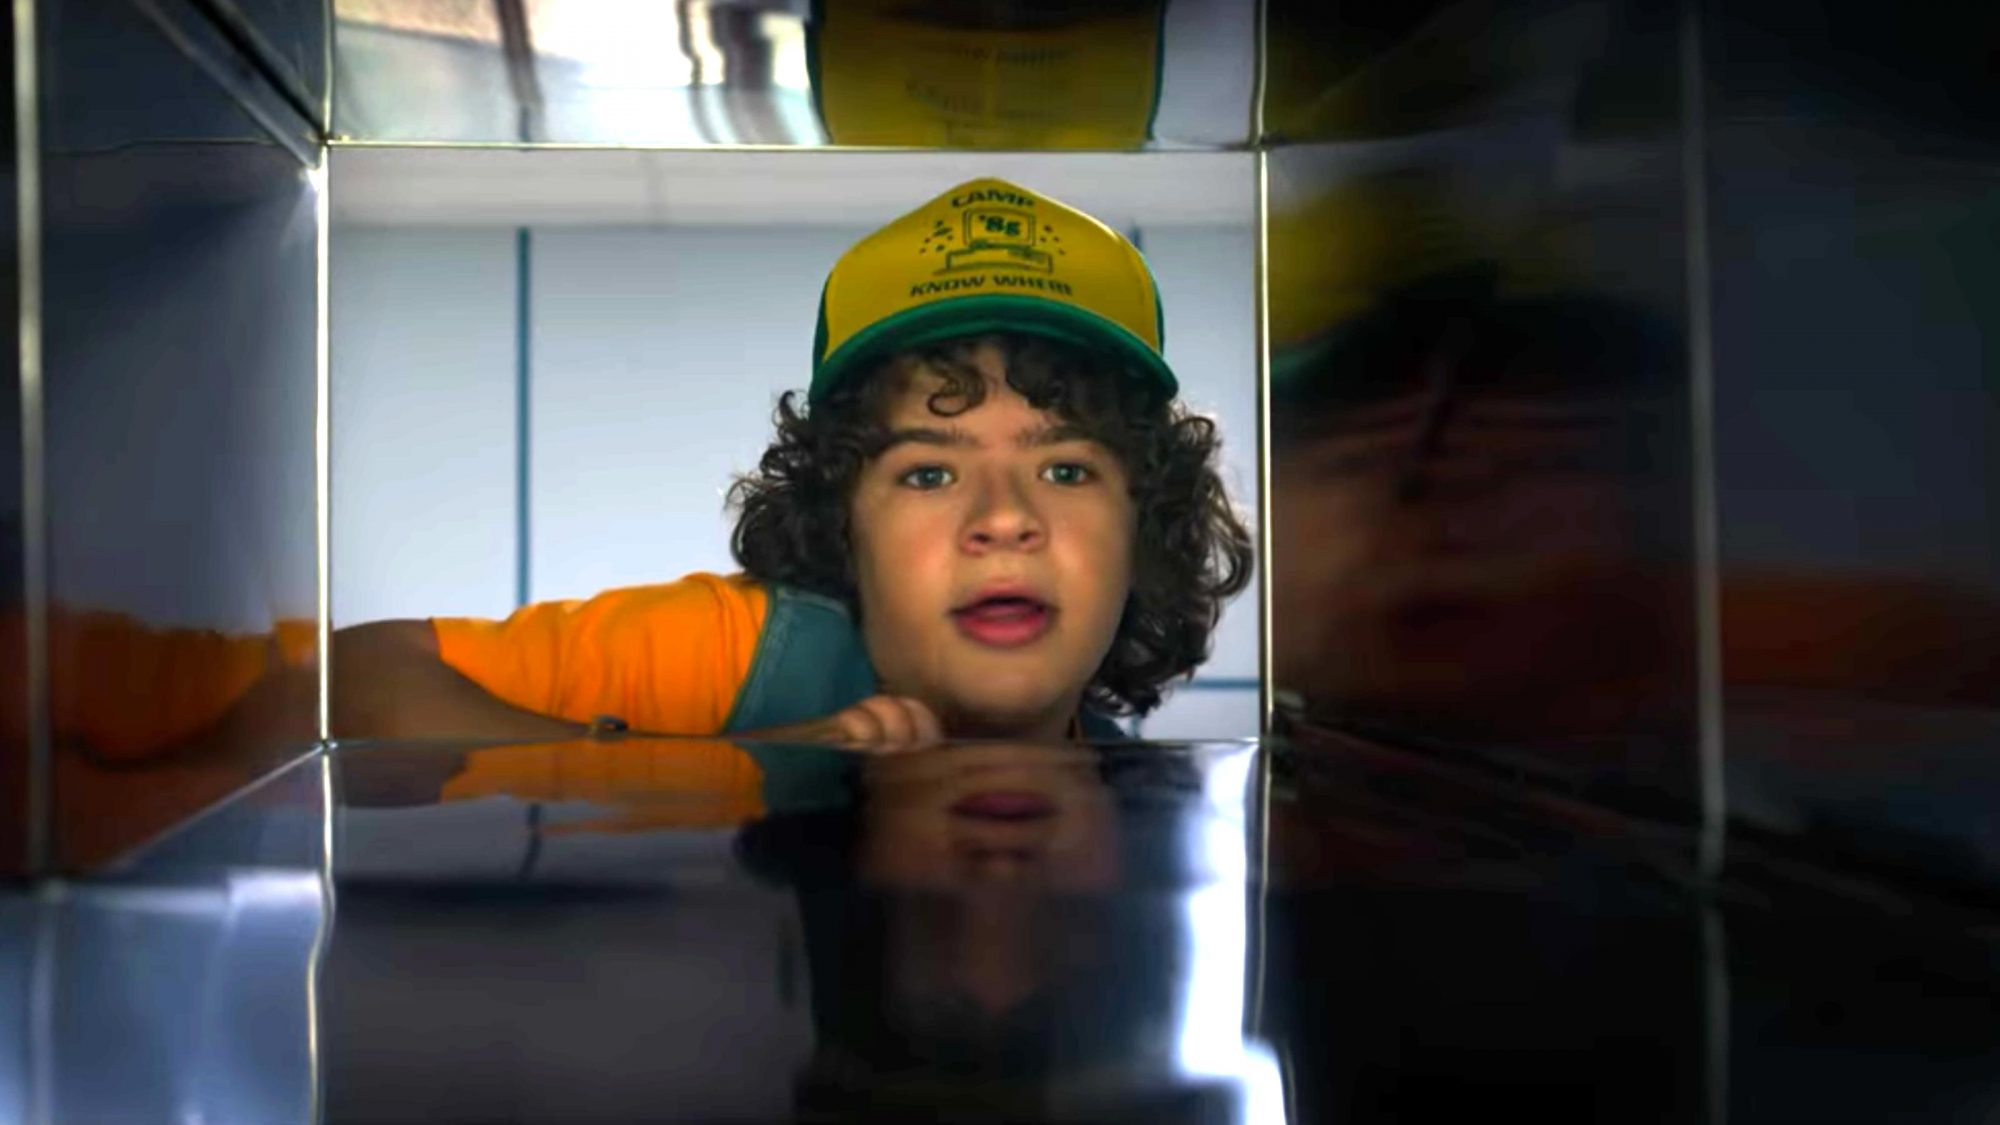 Stranger Things 3 (screen grab) Season 3, Episode 4 Gaten Matarazzo as Dustin CR: Netflix